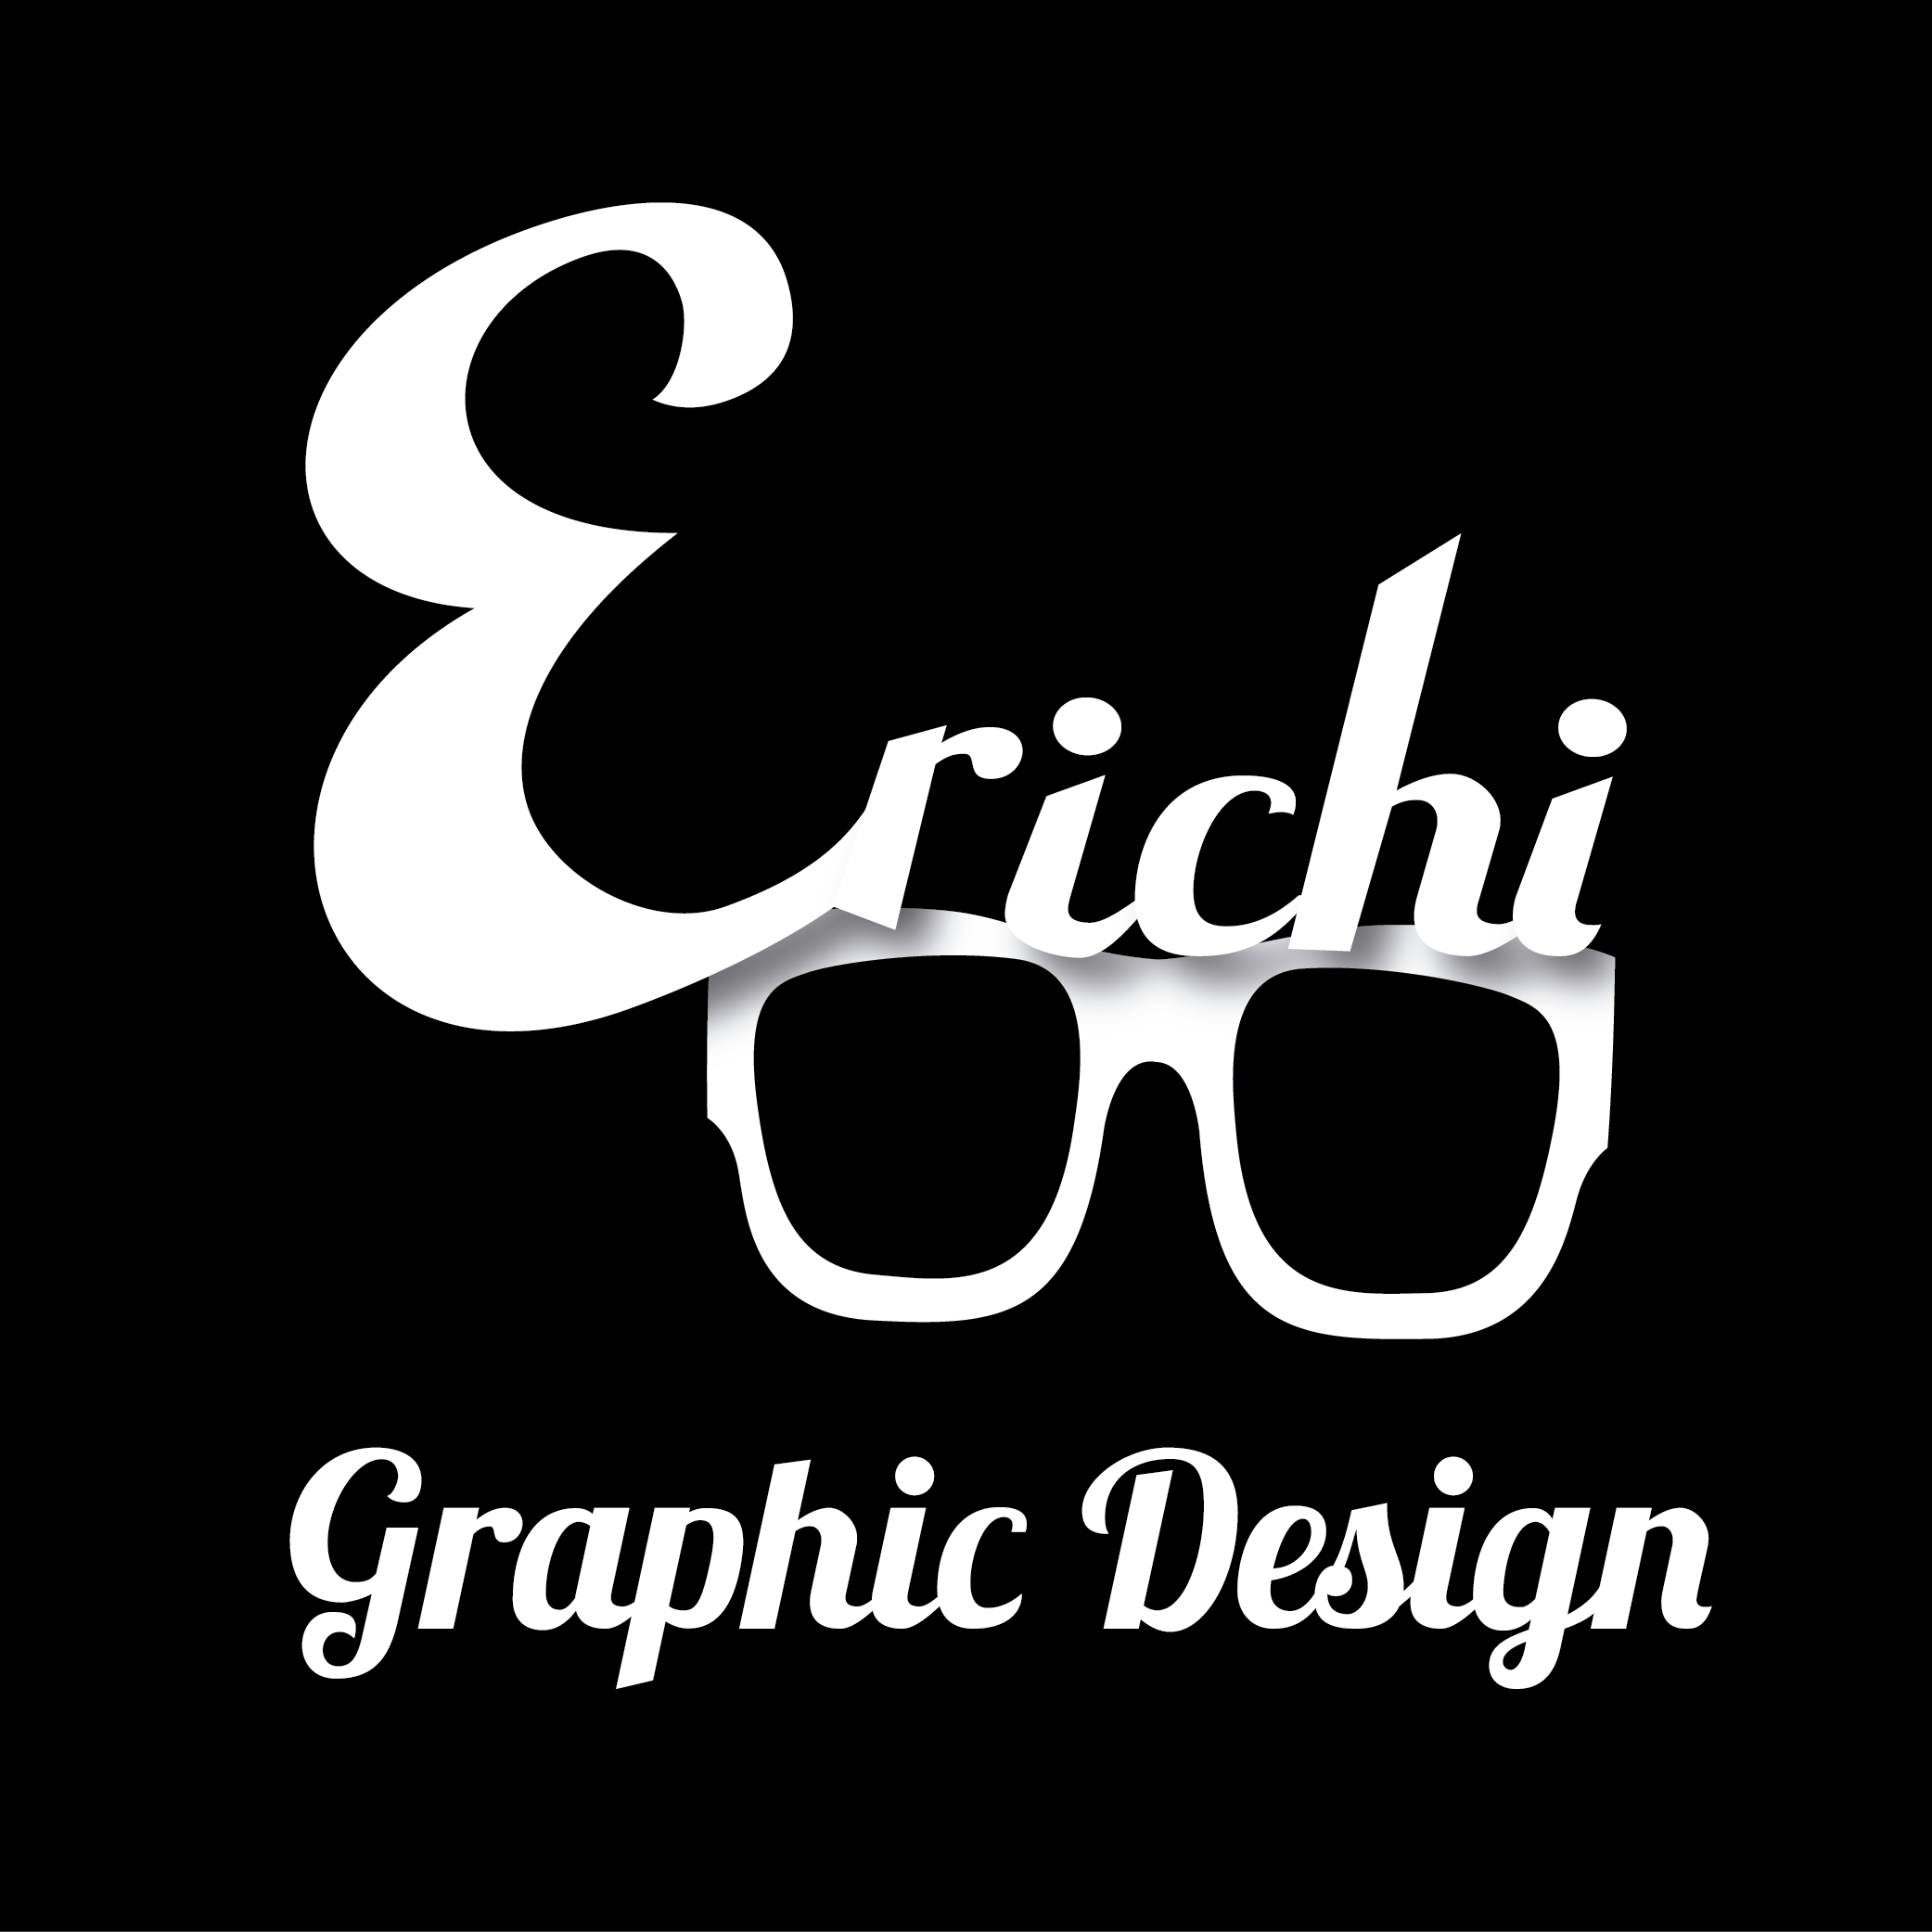 Erichi Graphic Design avatar